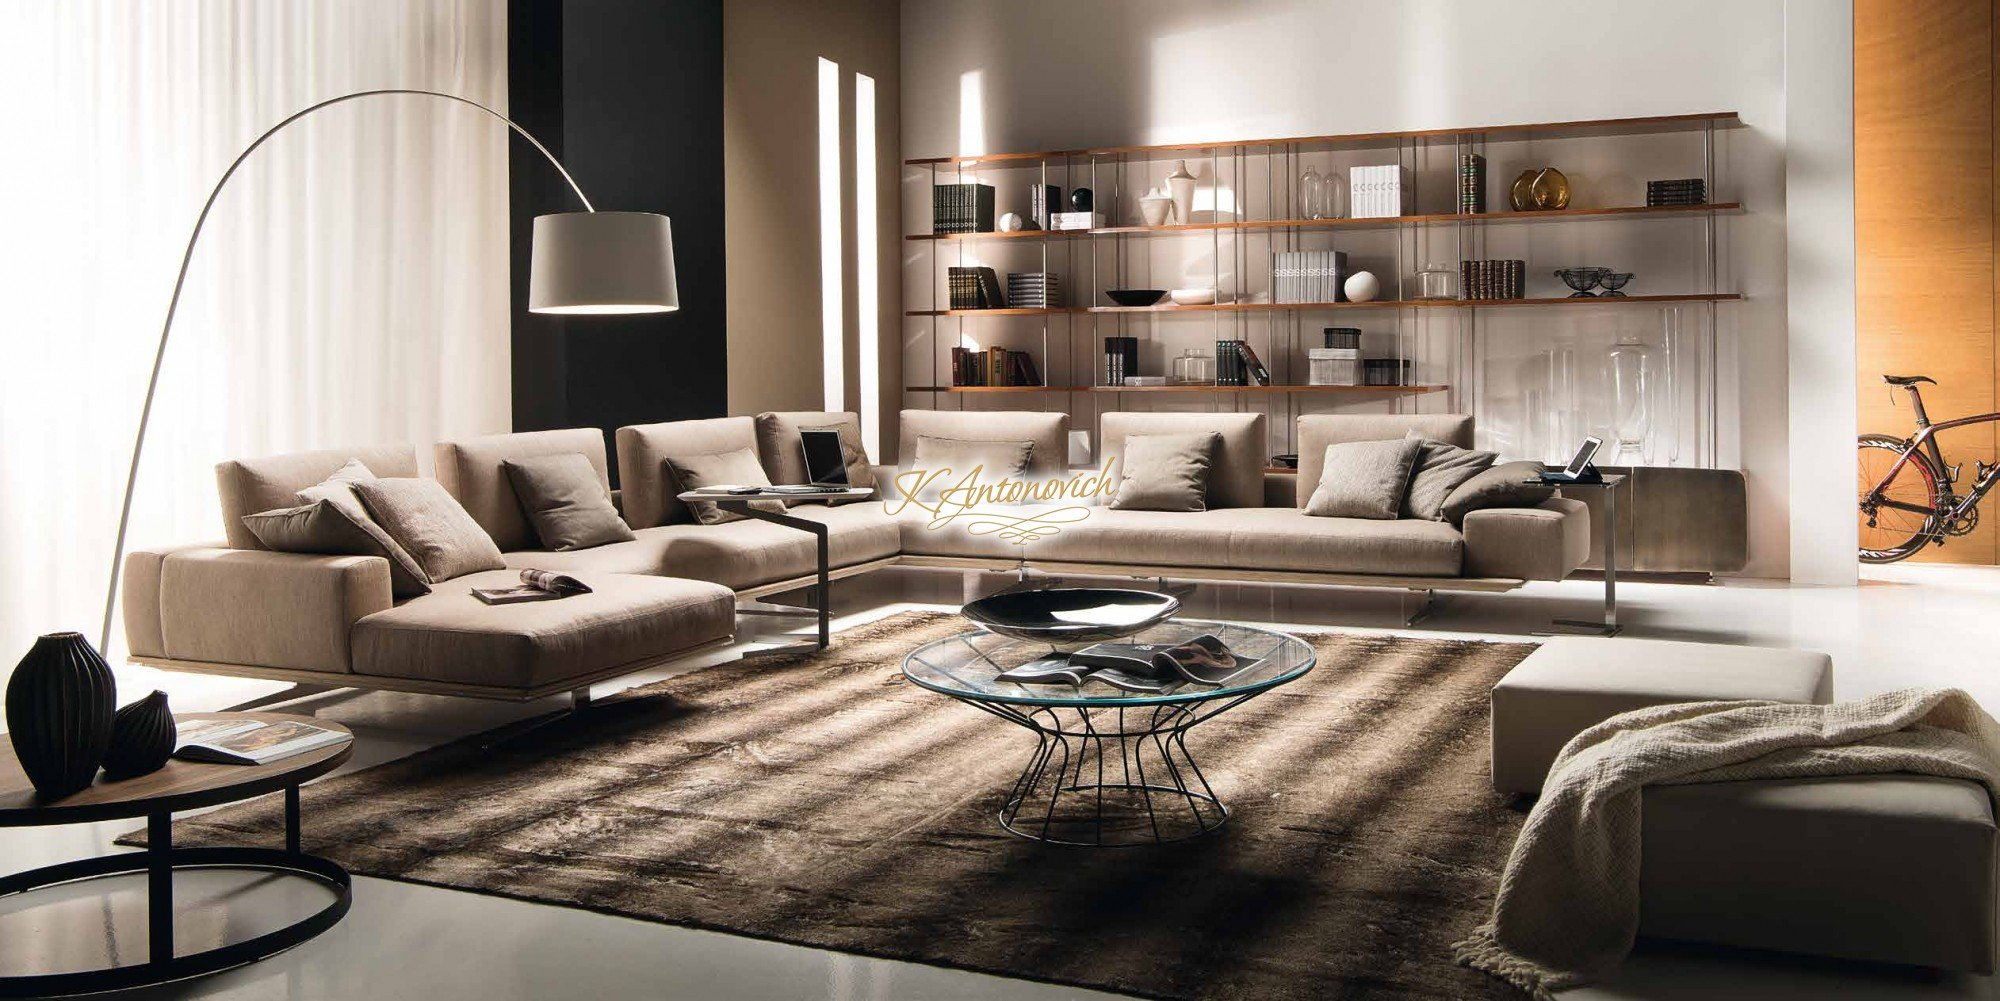 We may earn commission on some of the items you choose to buy. Modern italian living room furniture